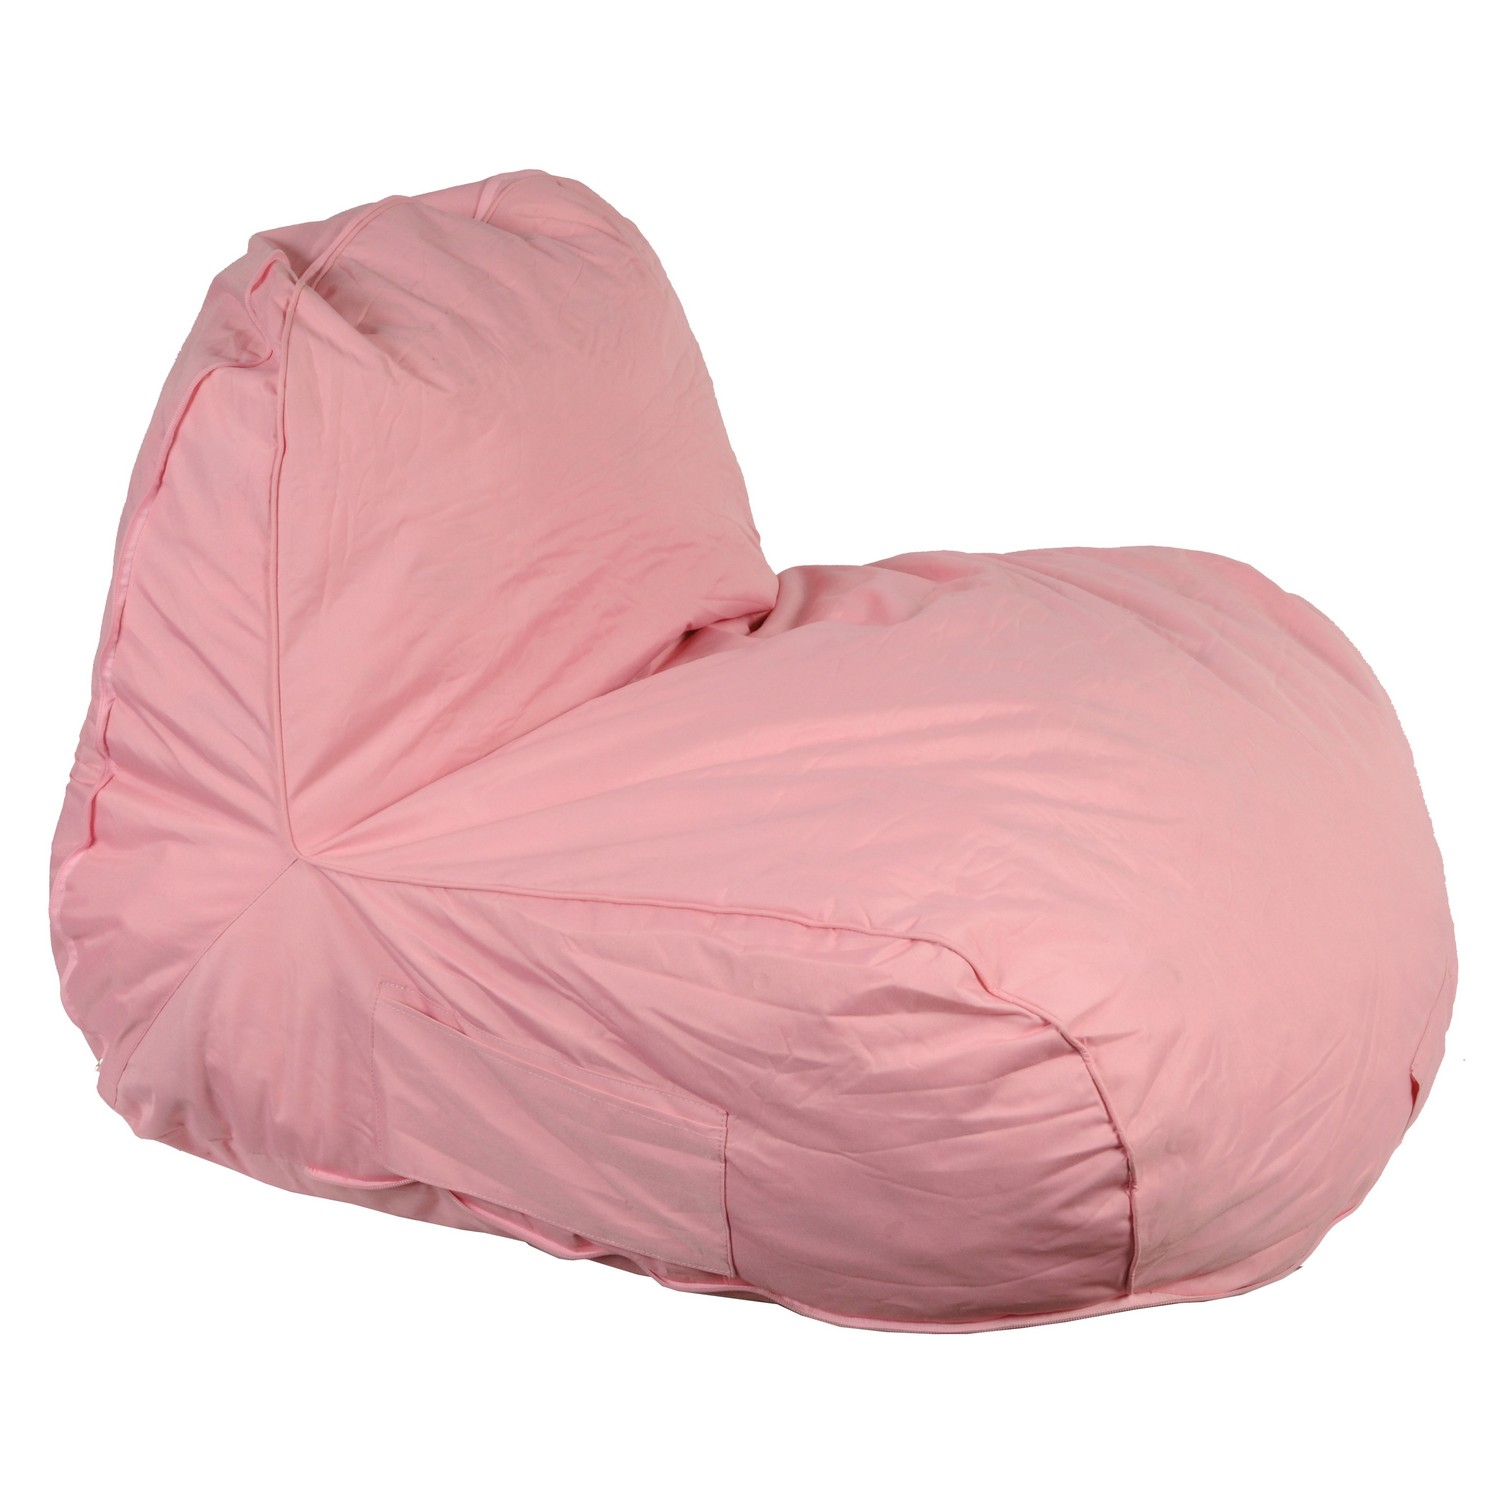 Incredible Details About Bean Bag Lazy Lounger Pink Beanbag Relax Chair Cushion Indoor Outdoor Home Sofa Alphanode Cool Chair Designs And Ideas Alphanodeonline